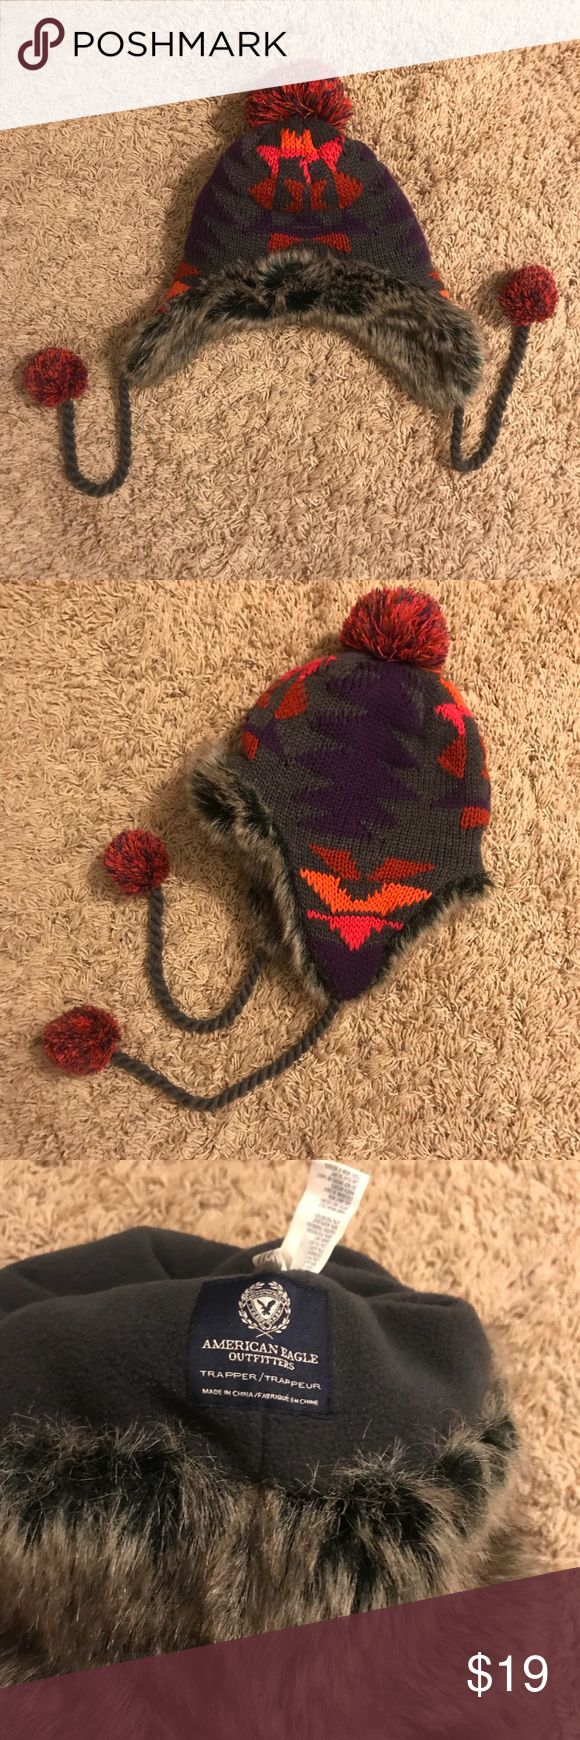 ❄️Like new American Eagle faux fur trapper hat❄️ Like new American Eagle trapper hat! Really cute grey- black faux fur and a cool pink, purple, orange, and red geometric knit design! The fur extends in a headband around the inside and the middle of the inside is fleece. Covers up your ears well so you'll stay warm❄️ Only worn twice! Comes from a smoke free home! American Eagle Outfitters Accessories Hats